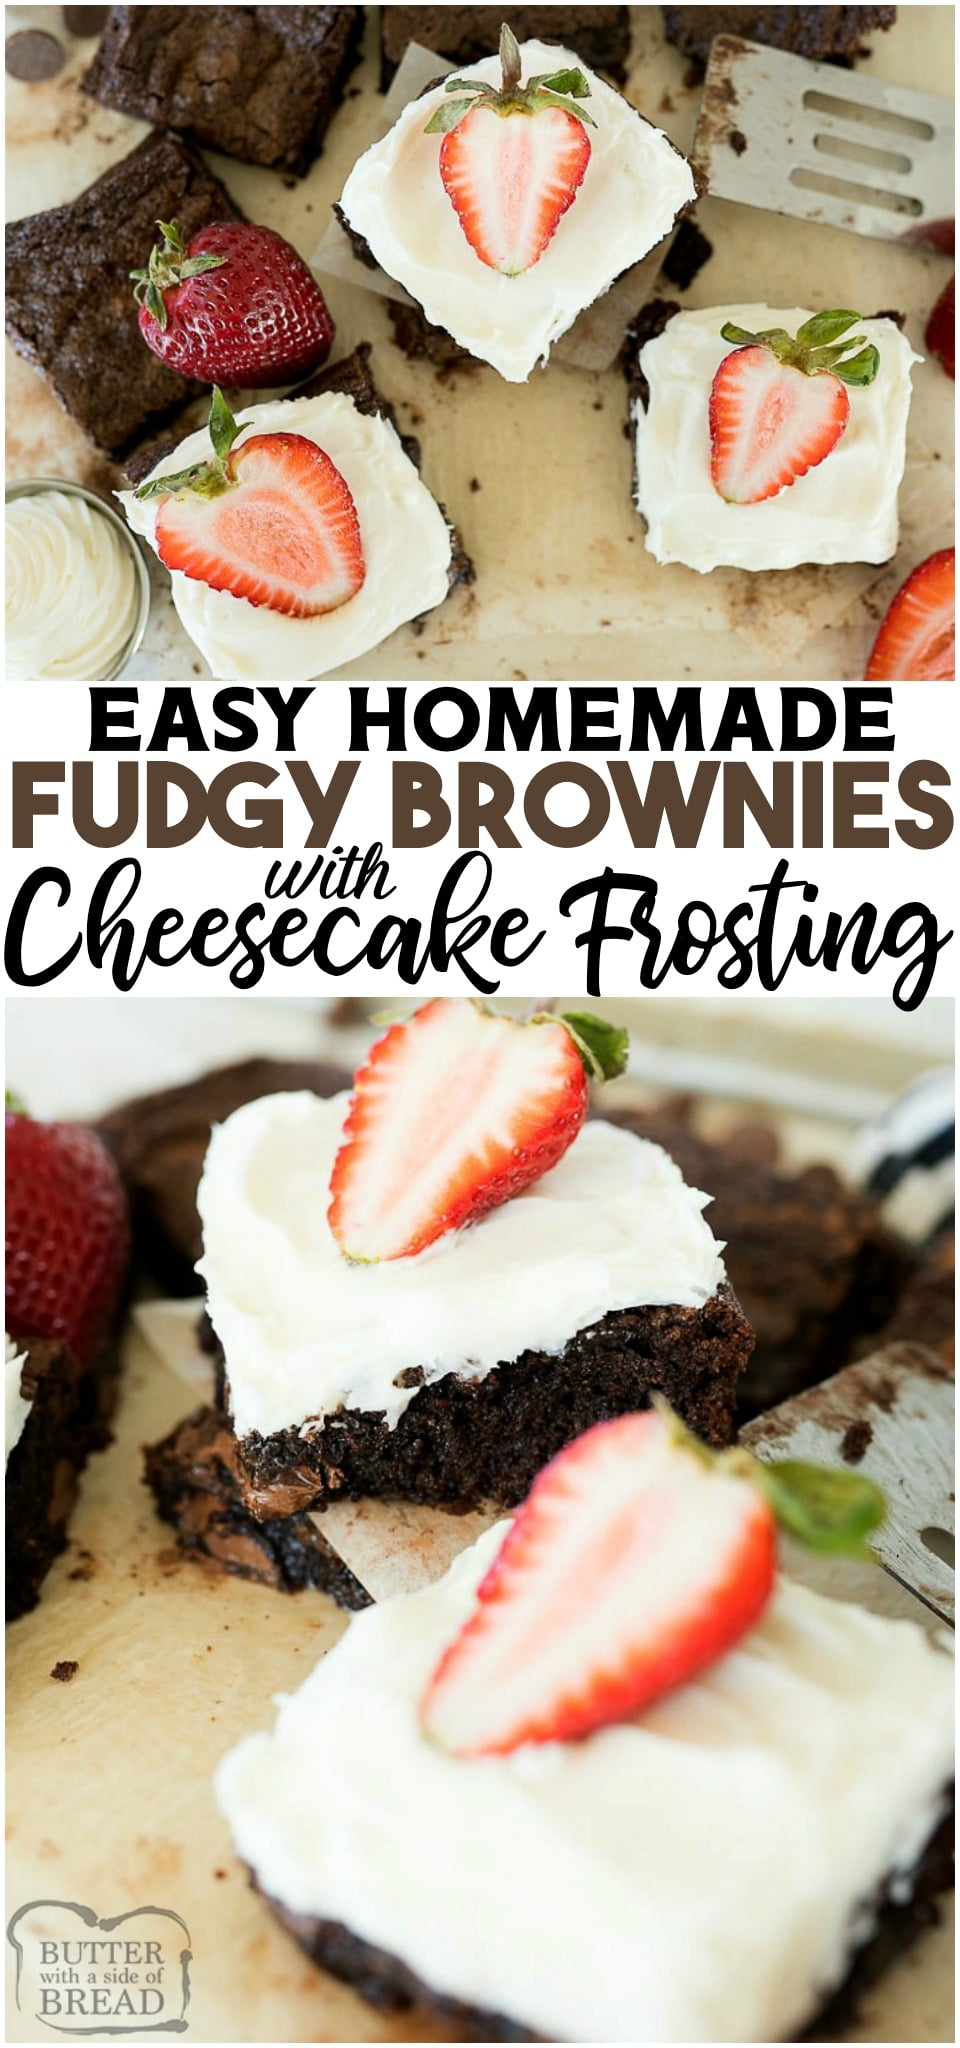 Brownies with a Cheesecake Frosting topped with fresh strawberries for a rich and decadent dessert! Fudgy homemade brownies topped with creamy Cheesecake frosting and fresh strawberries. #brownies #cheesecake #frosting #homemade #baking #dessert #recipe from BUTTER WITH A SIDE OF BREAD